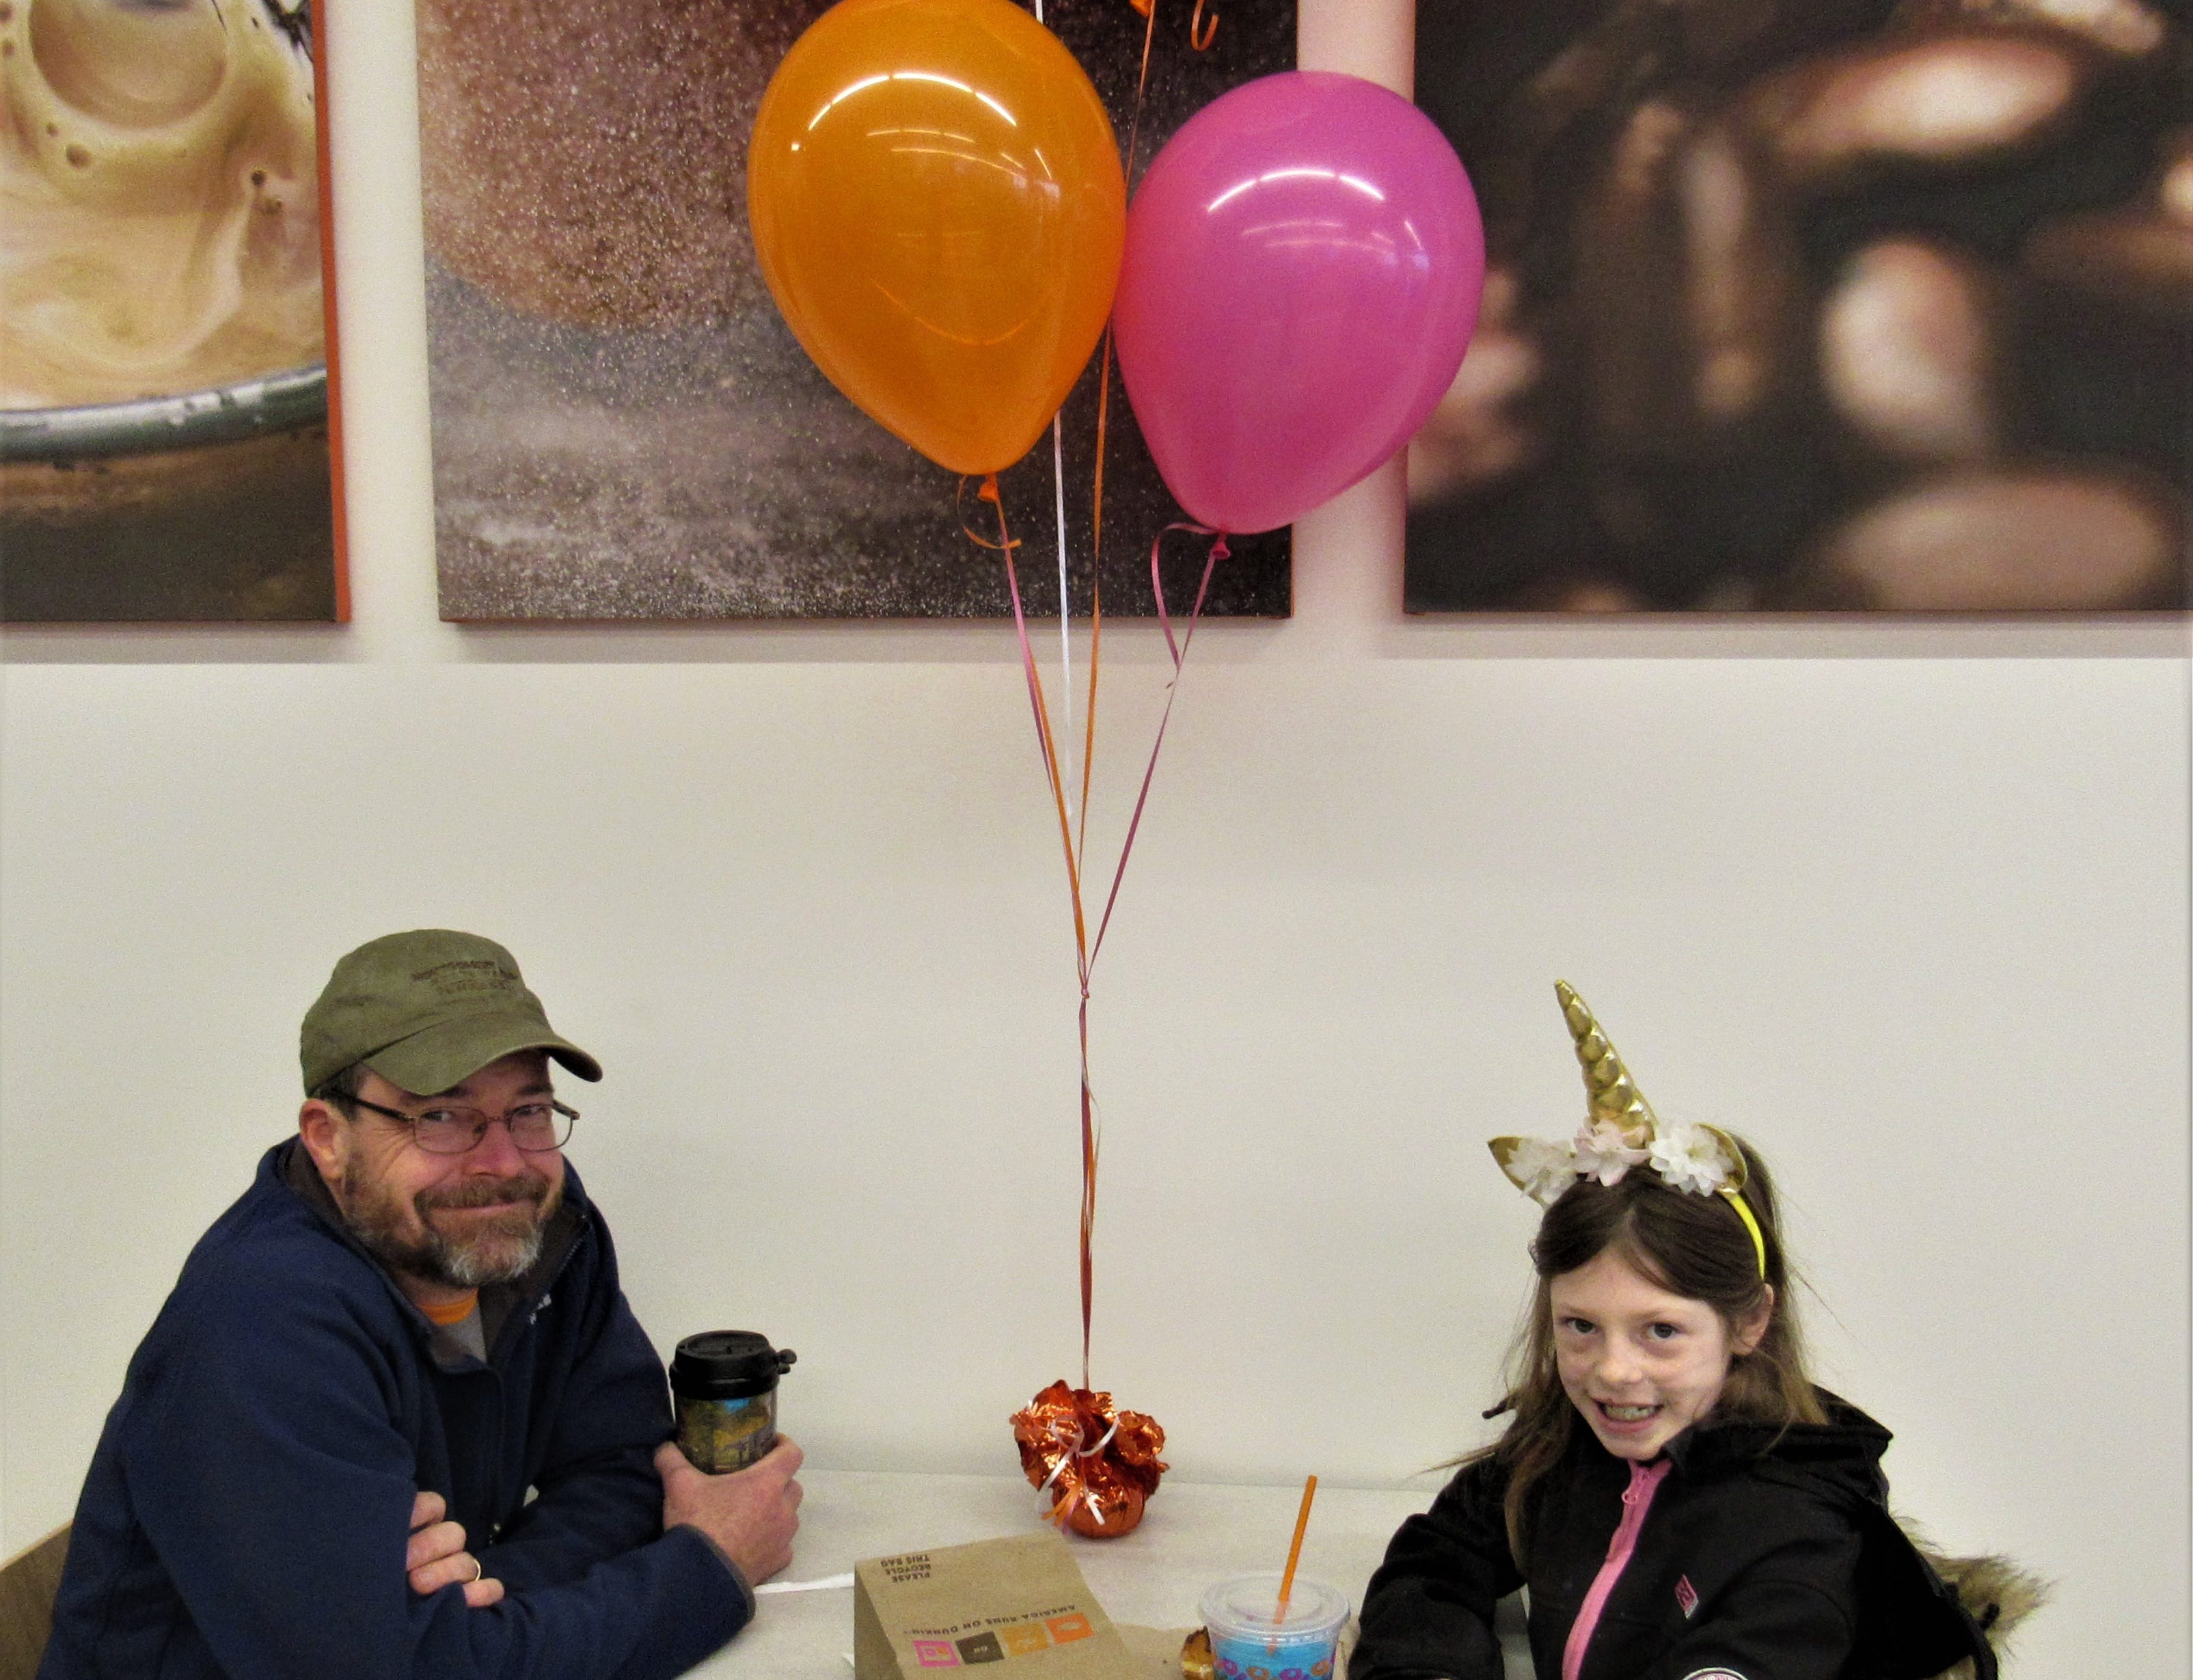 Larry Everett brought daughter Teagan in for her birthday.  She turned 8 on Feb. 2 and came in to enter a contest and have a doughnut, of course.